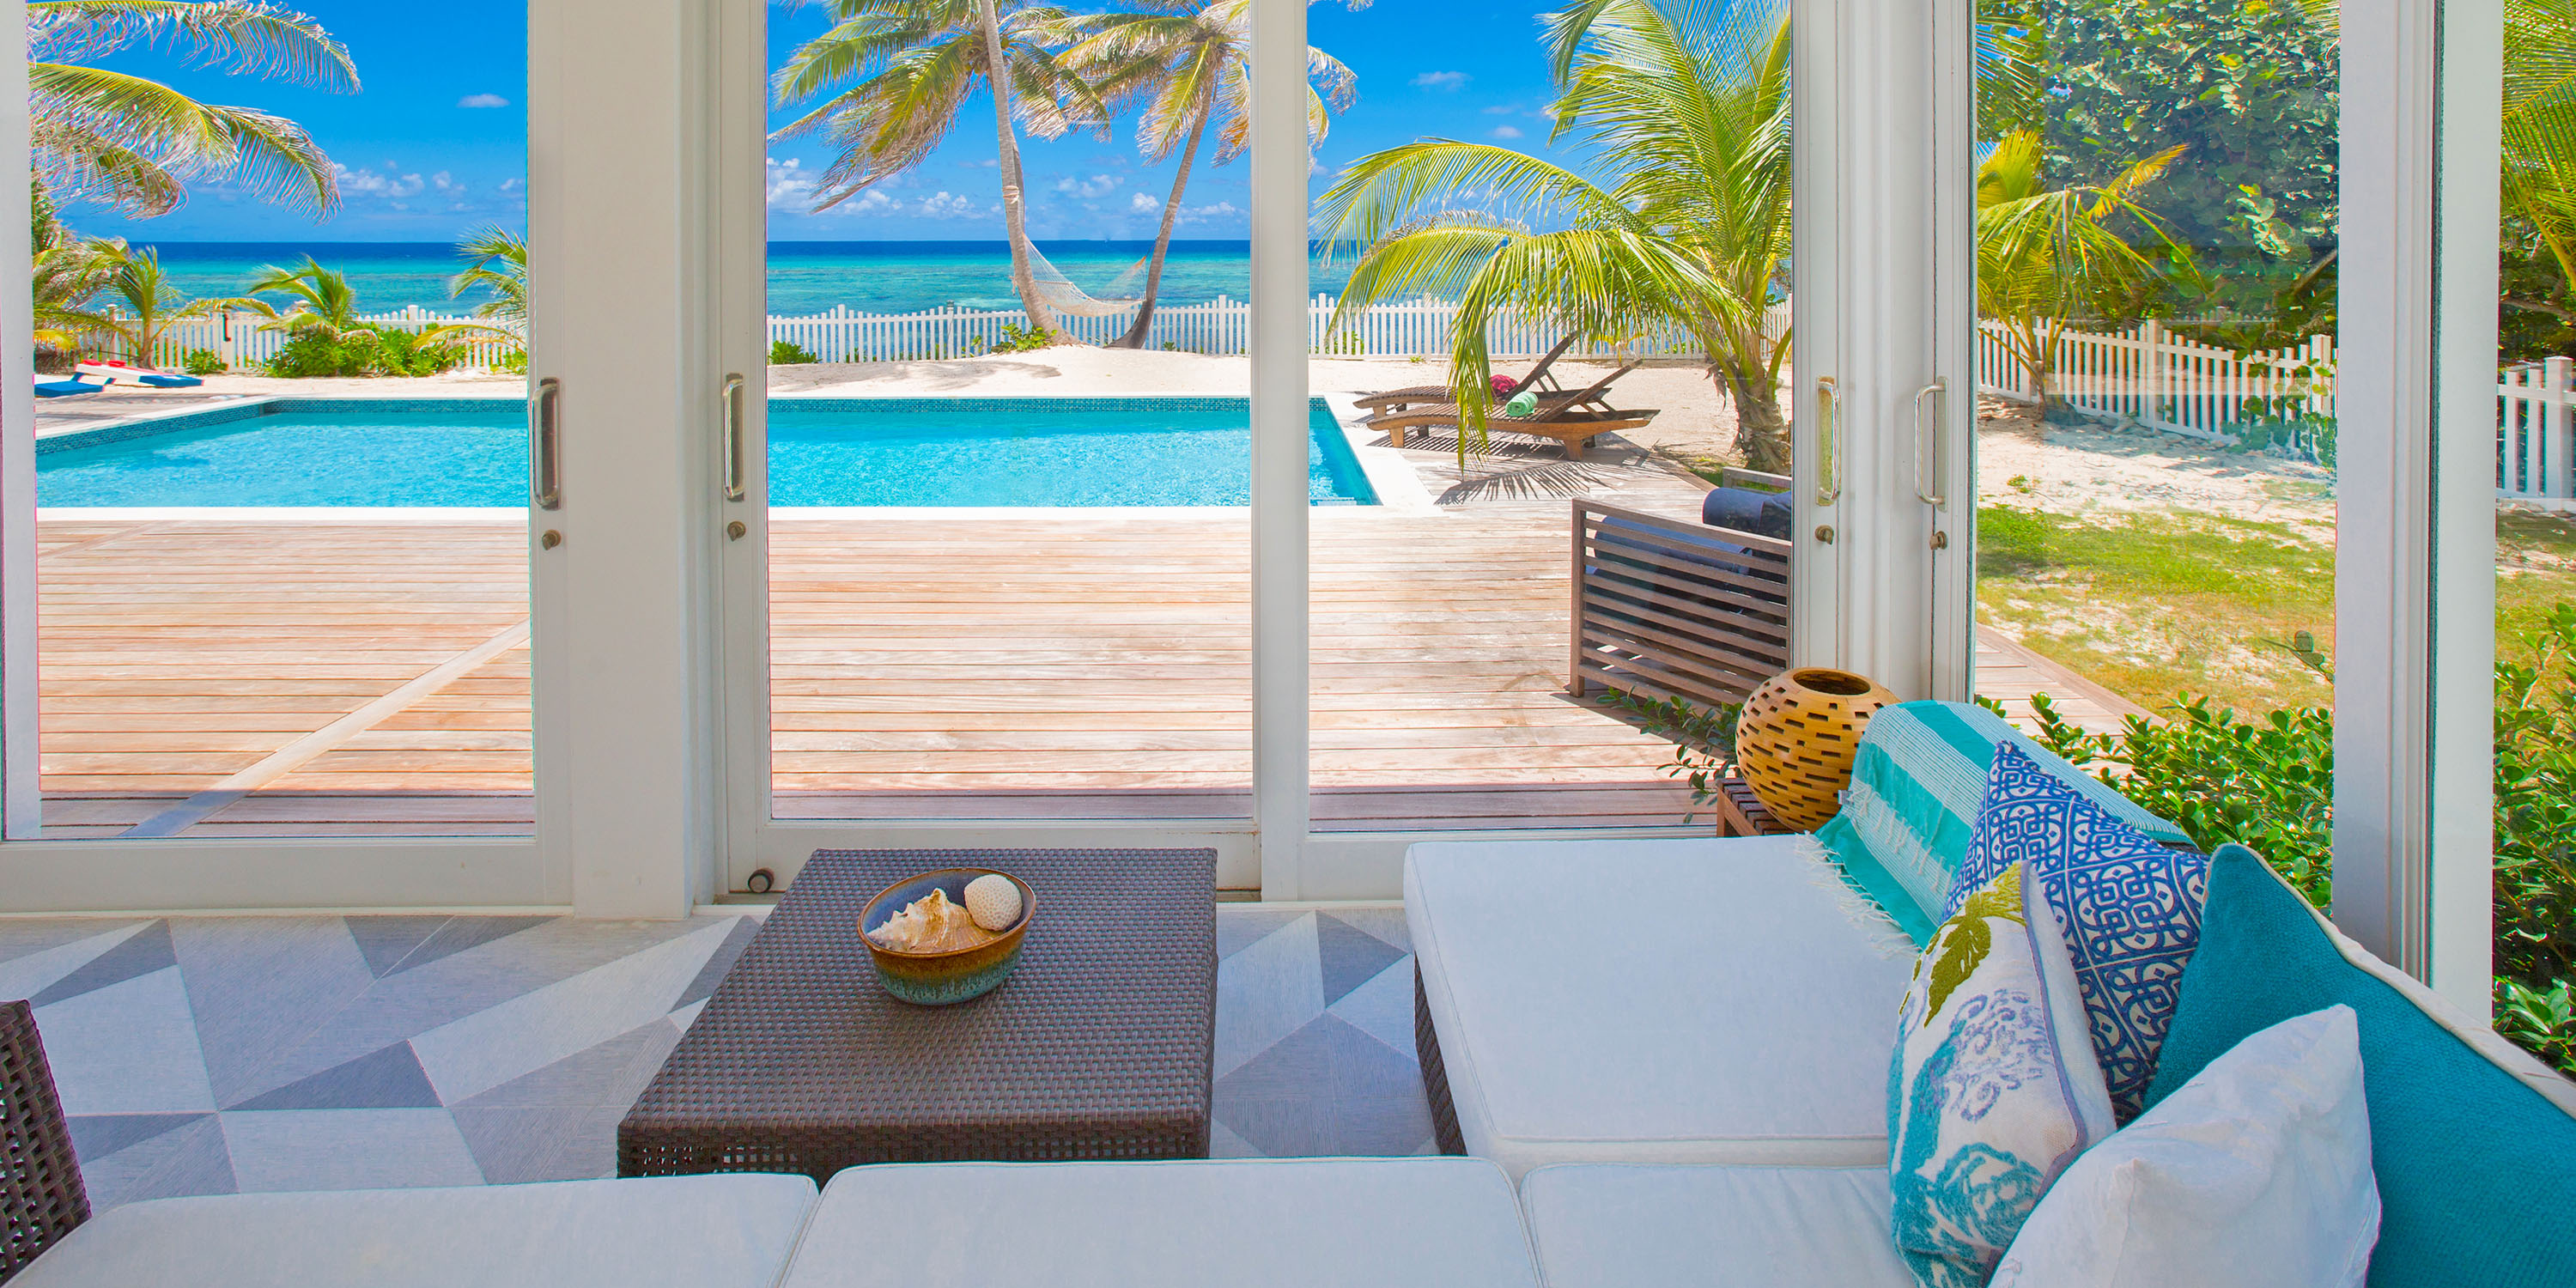 Outdoor Living Northside The Best Of Indoor Outdoor Living Grand Cayman Villas Condos